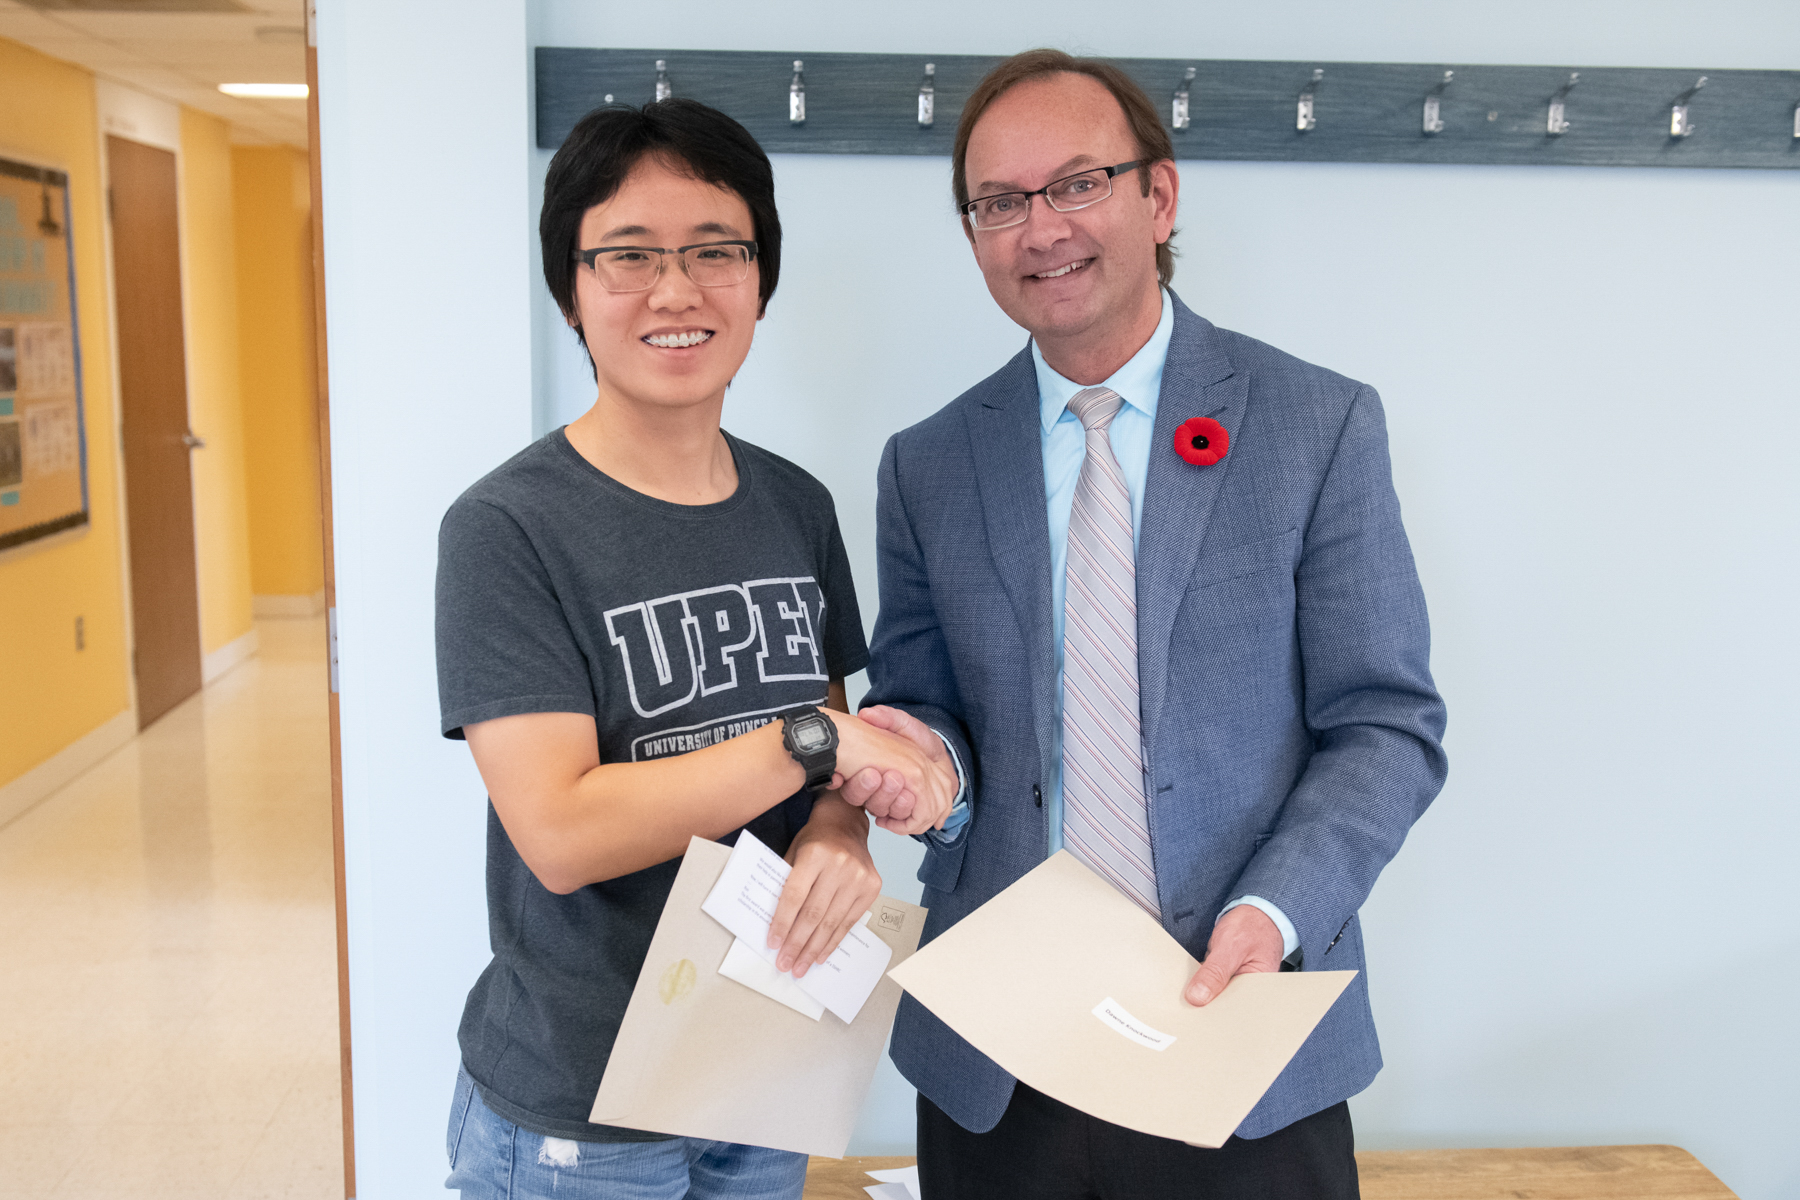 upei student han xu and dean of education ron macdonald